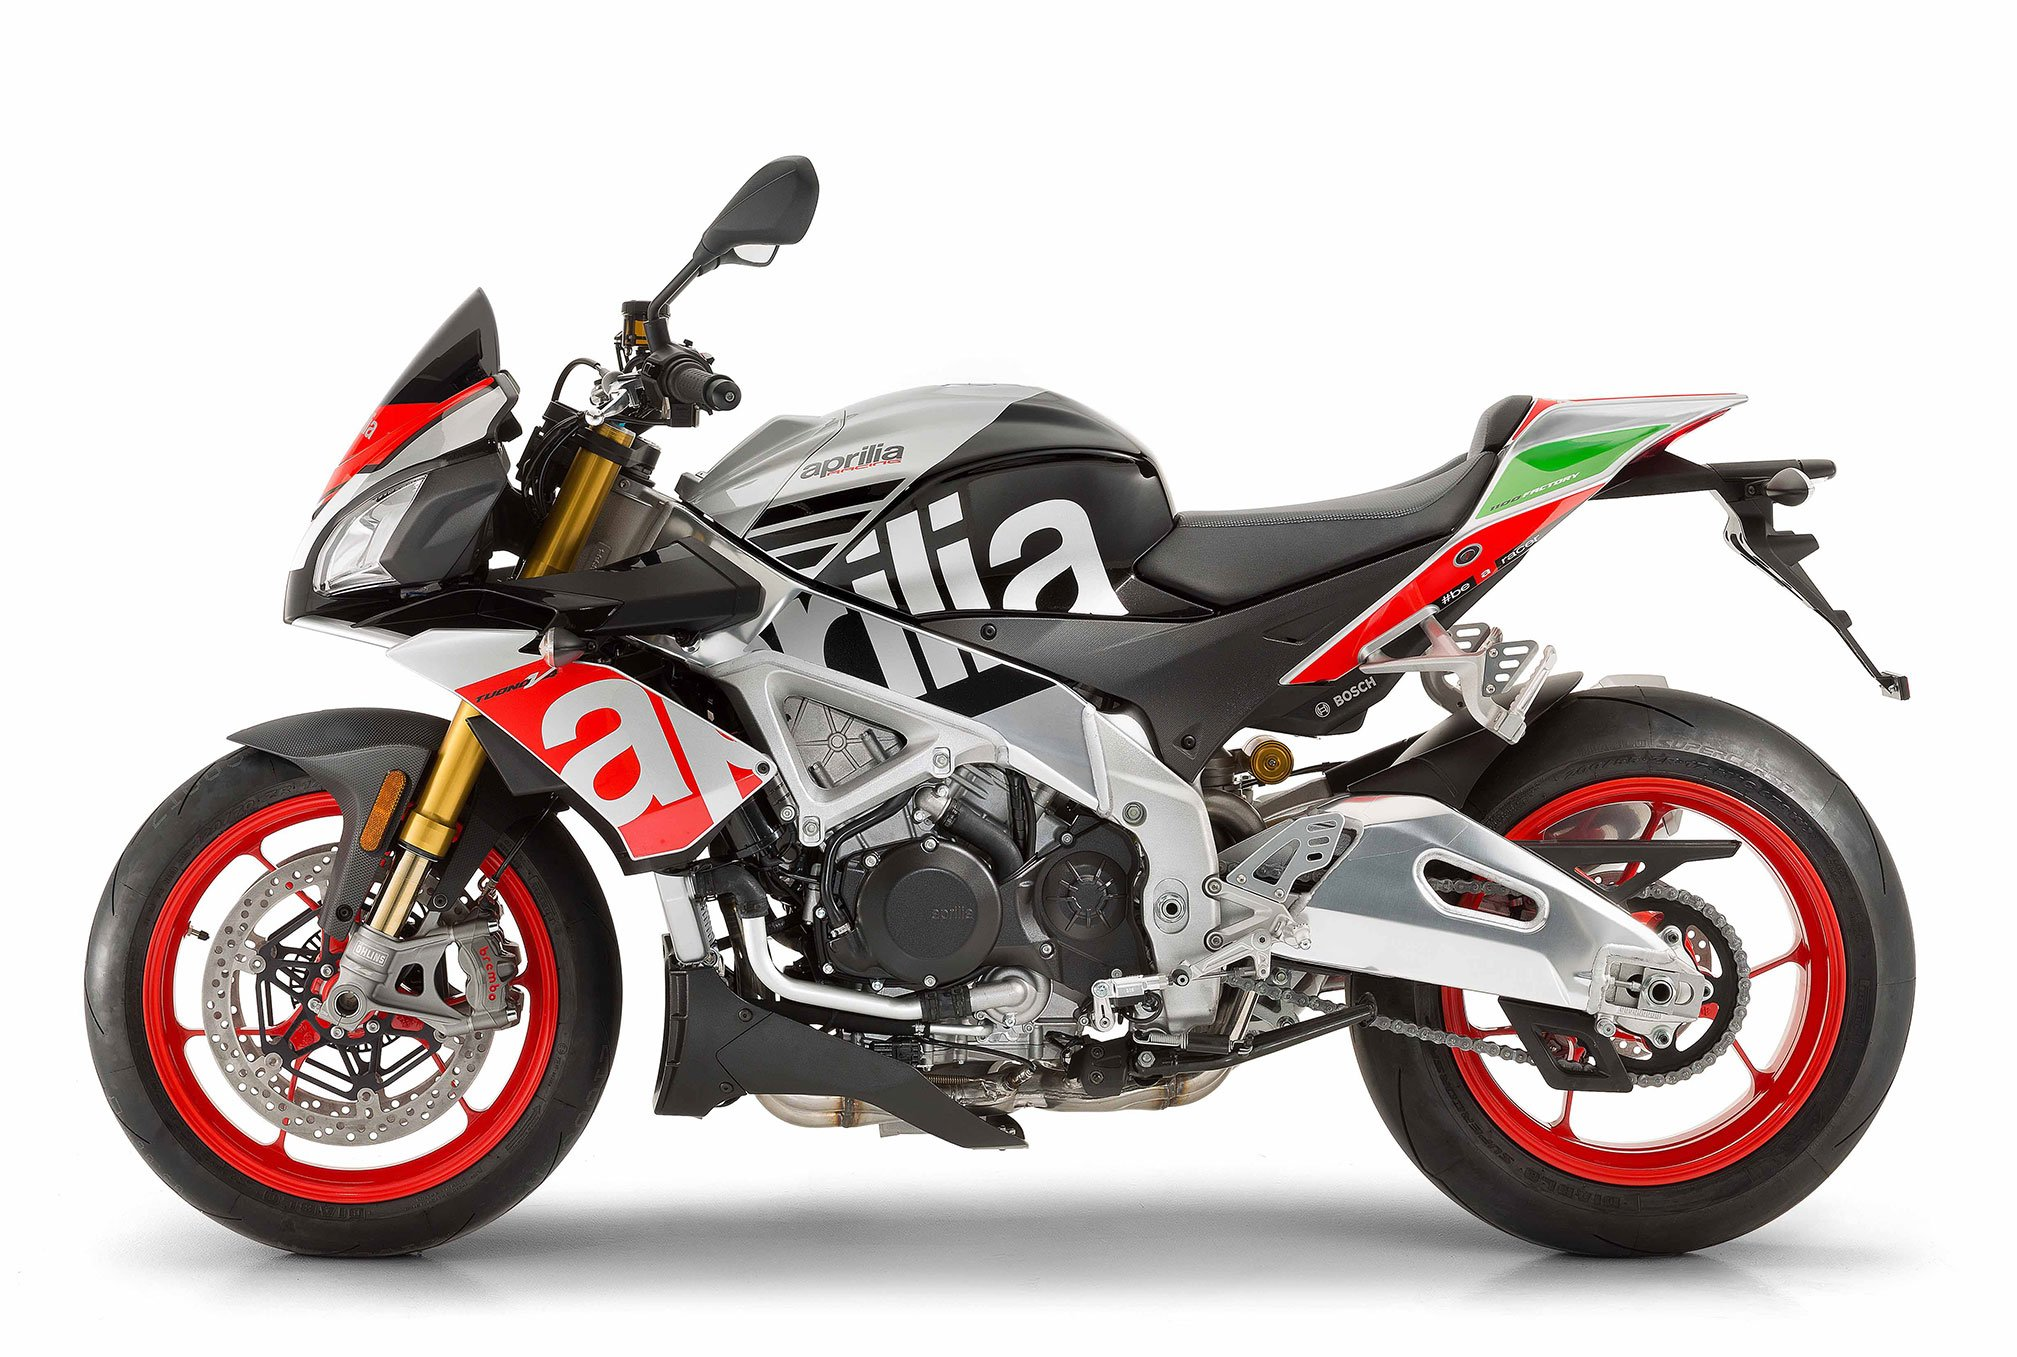 2 Aprilia Tuono V4 1100 Factory HD Wallpapers Background Images 2017x1357